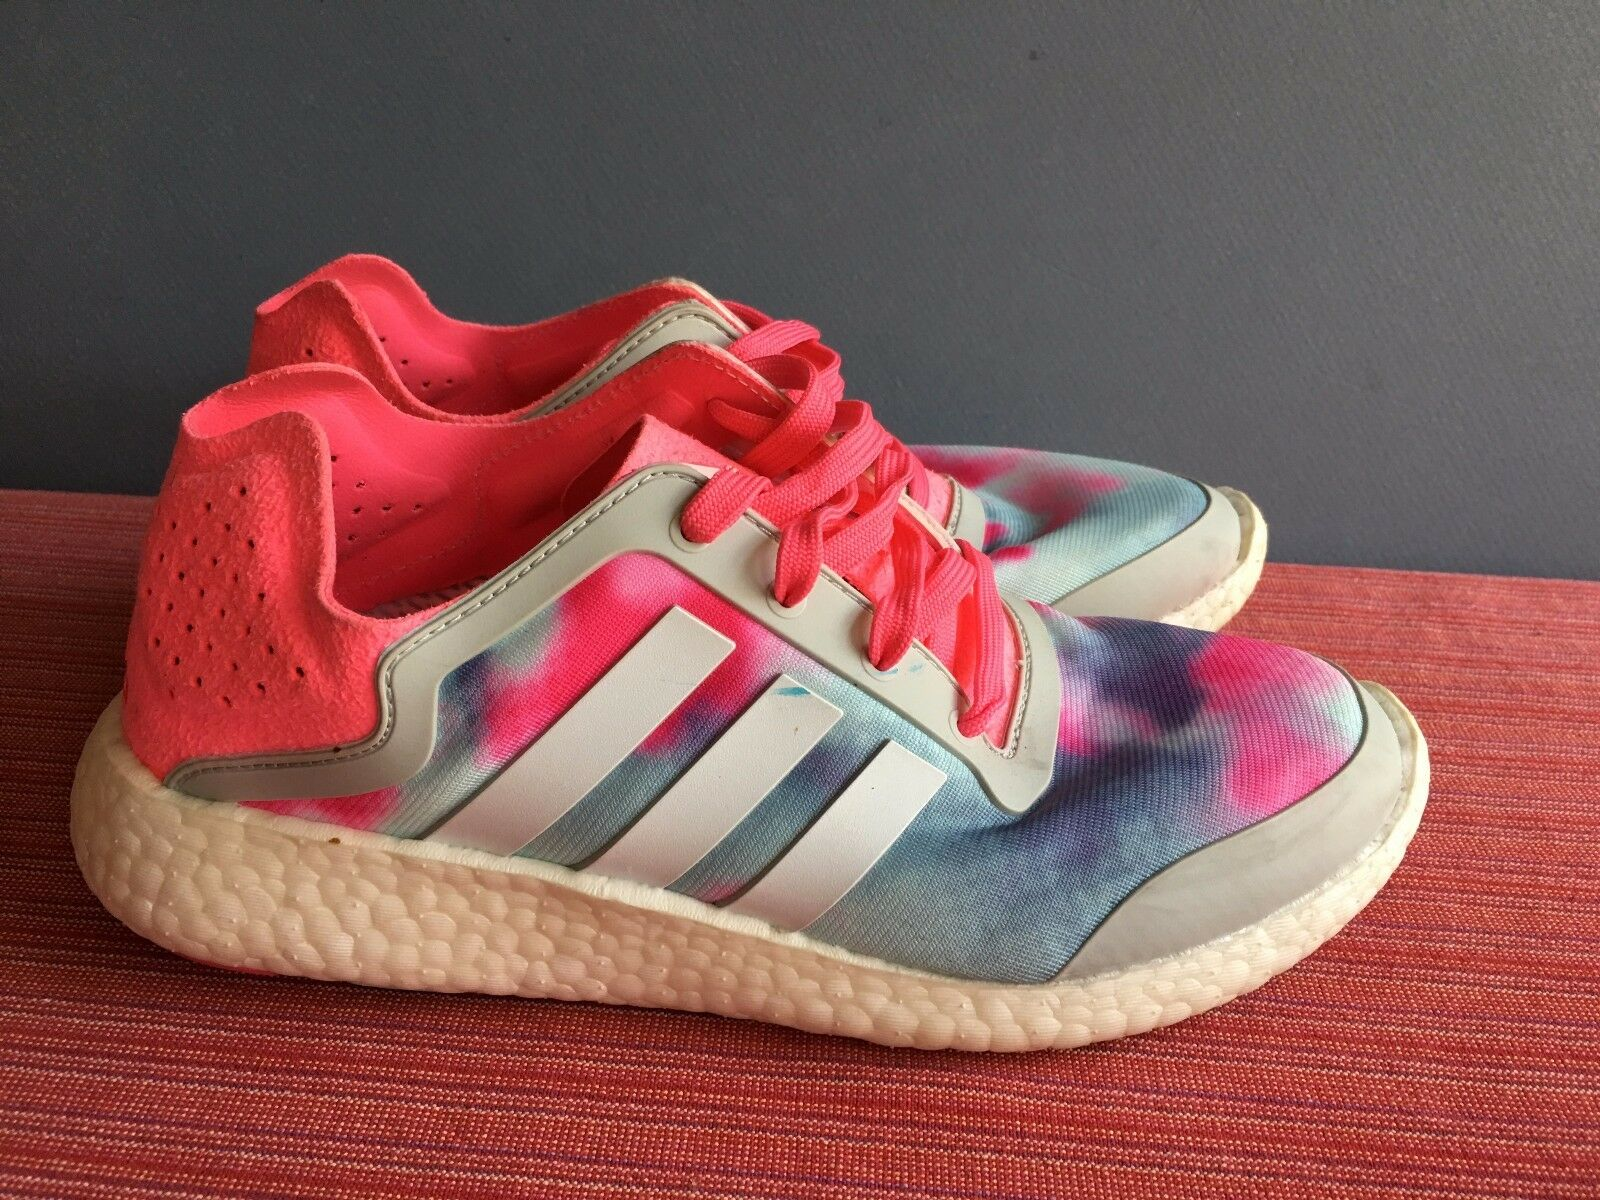 Adidas Pure Boost B26503 City Blur Running Shoes Women's 6.5 Worn ONCE